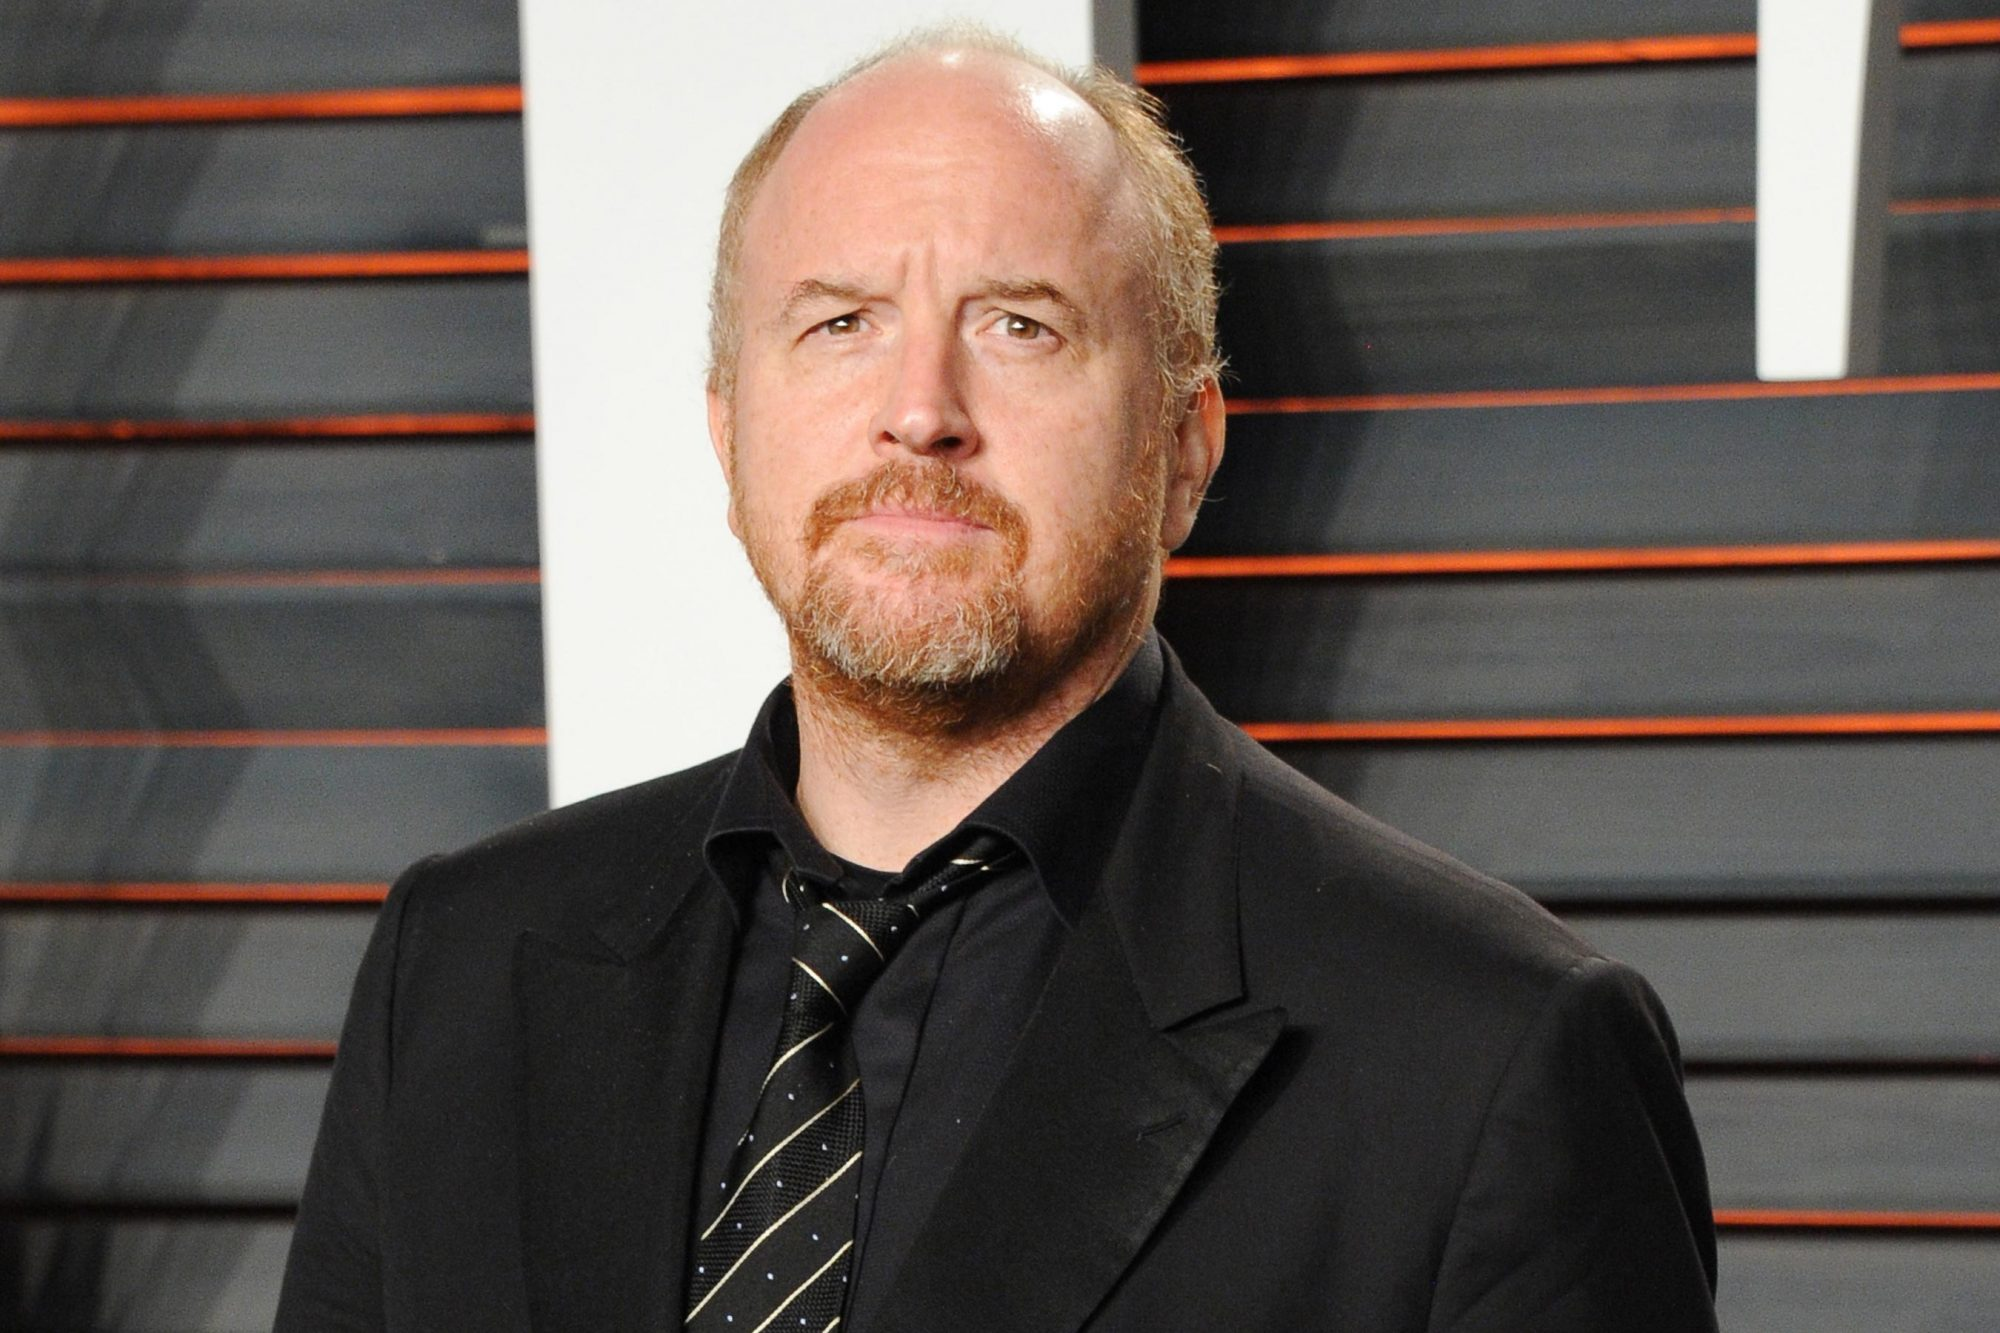 """Louis C.K. Breaks Silence on SexualMisconduct Allegations: """"These Stories Are True"""""""